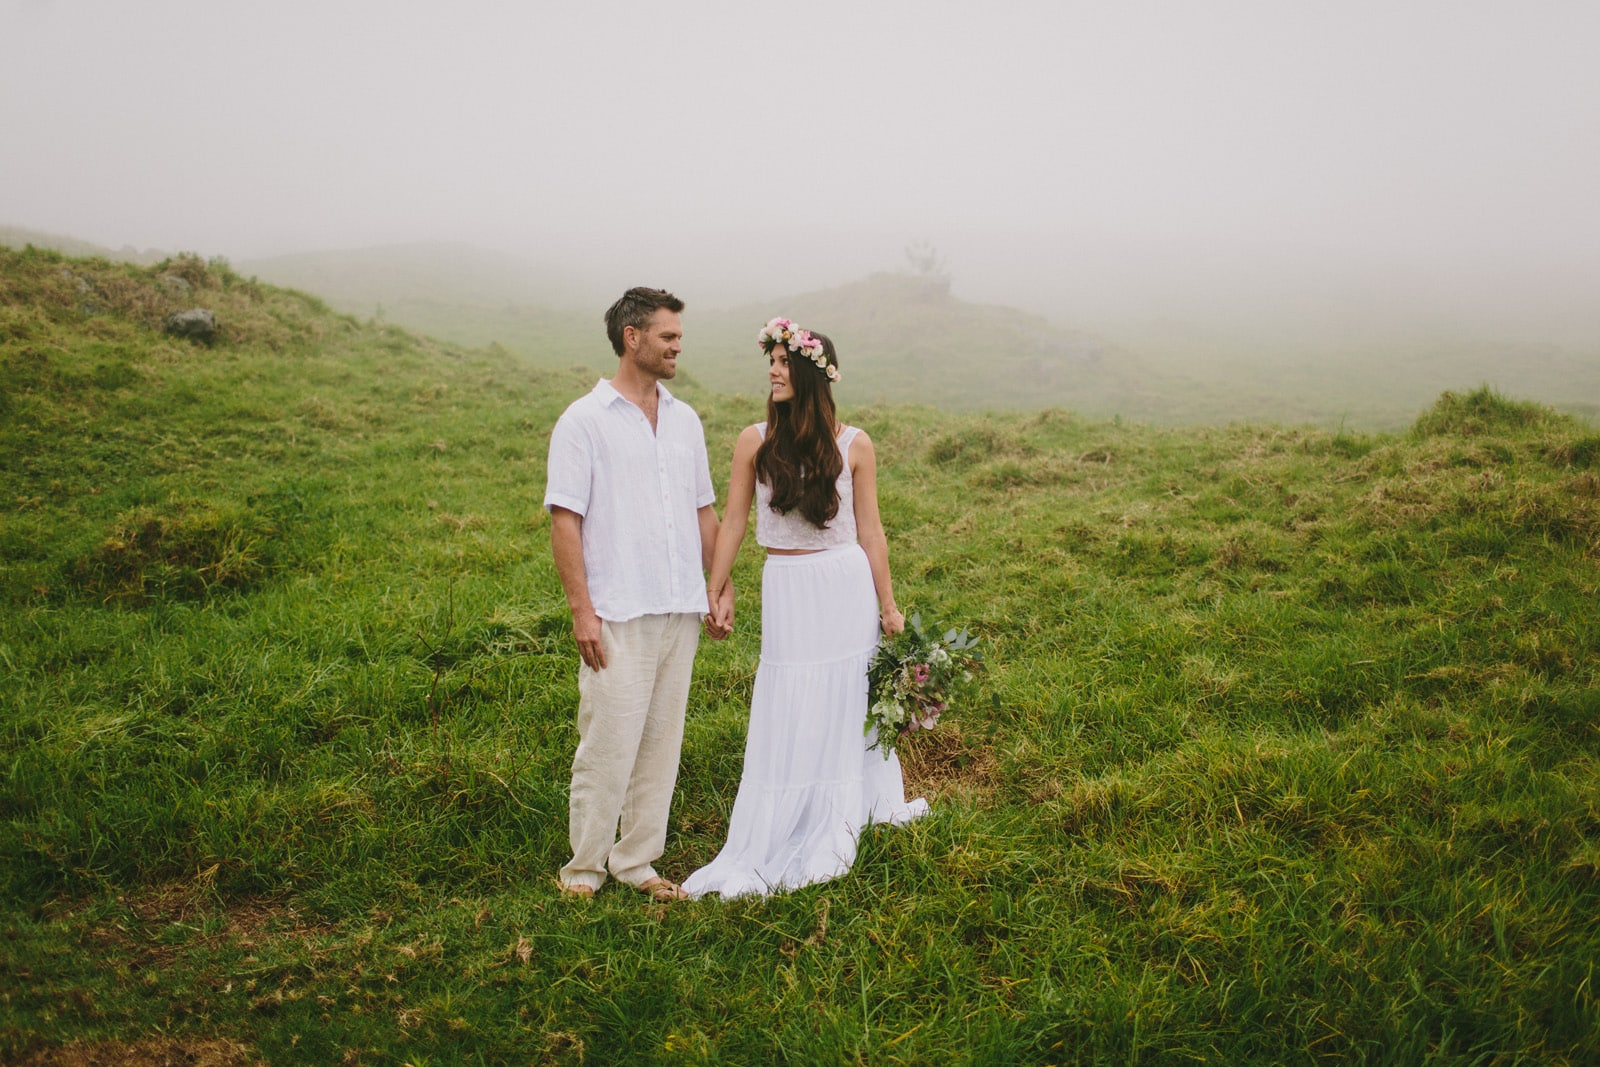 Maui_Wedding_Wailea_Kapalua_Hawaii_Photographer_014